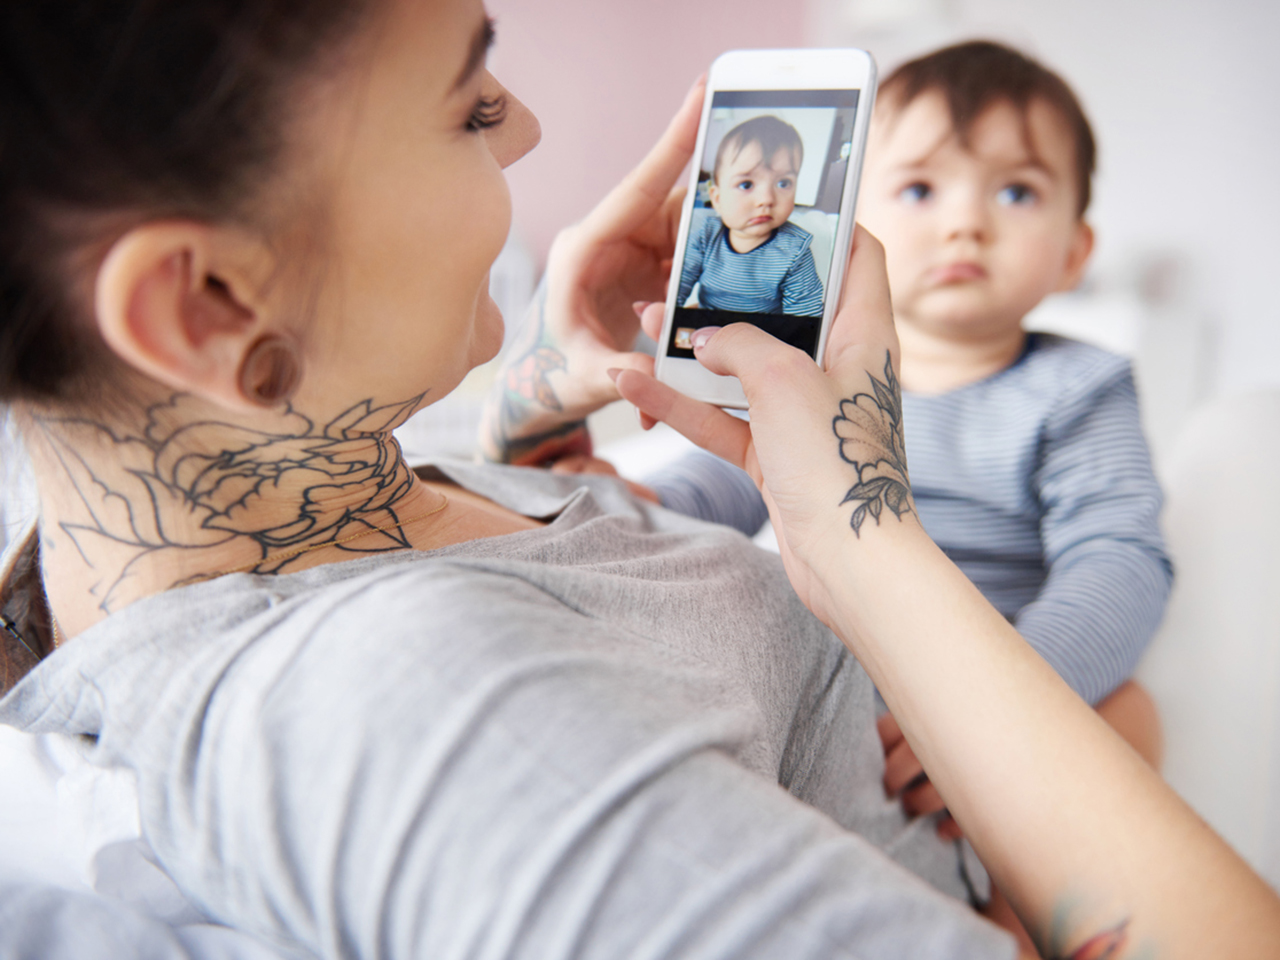 Mother taking a photo of her baby